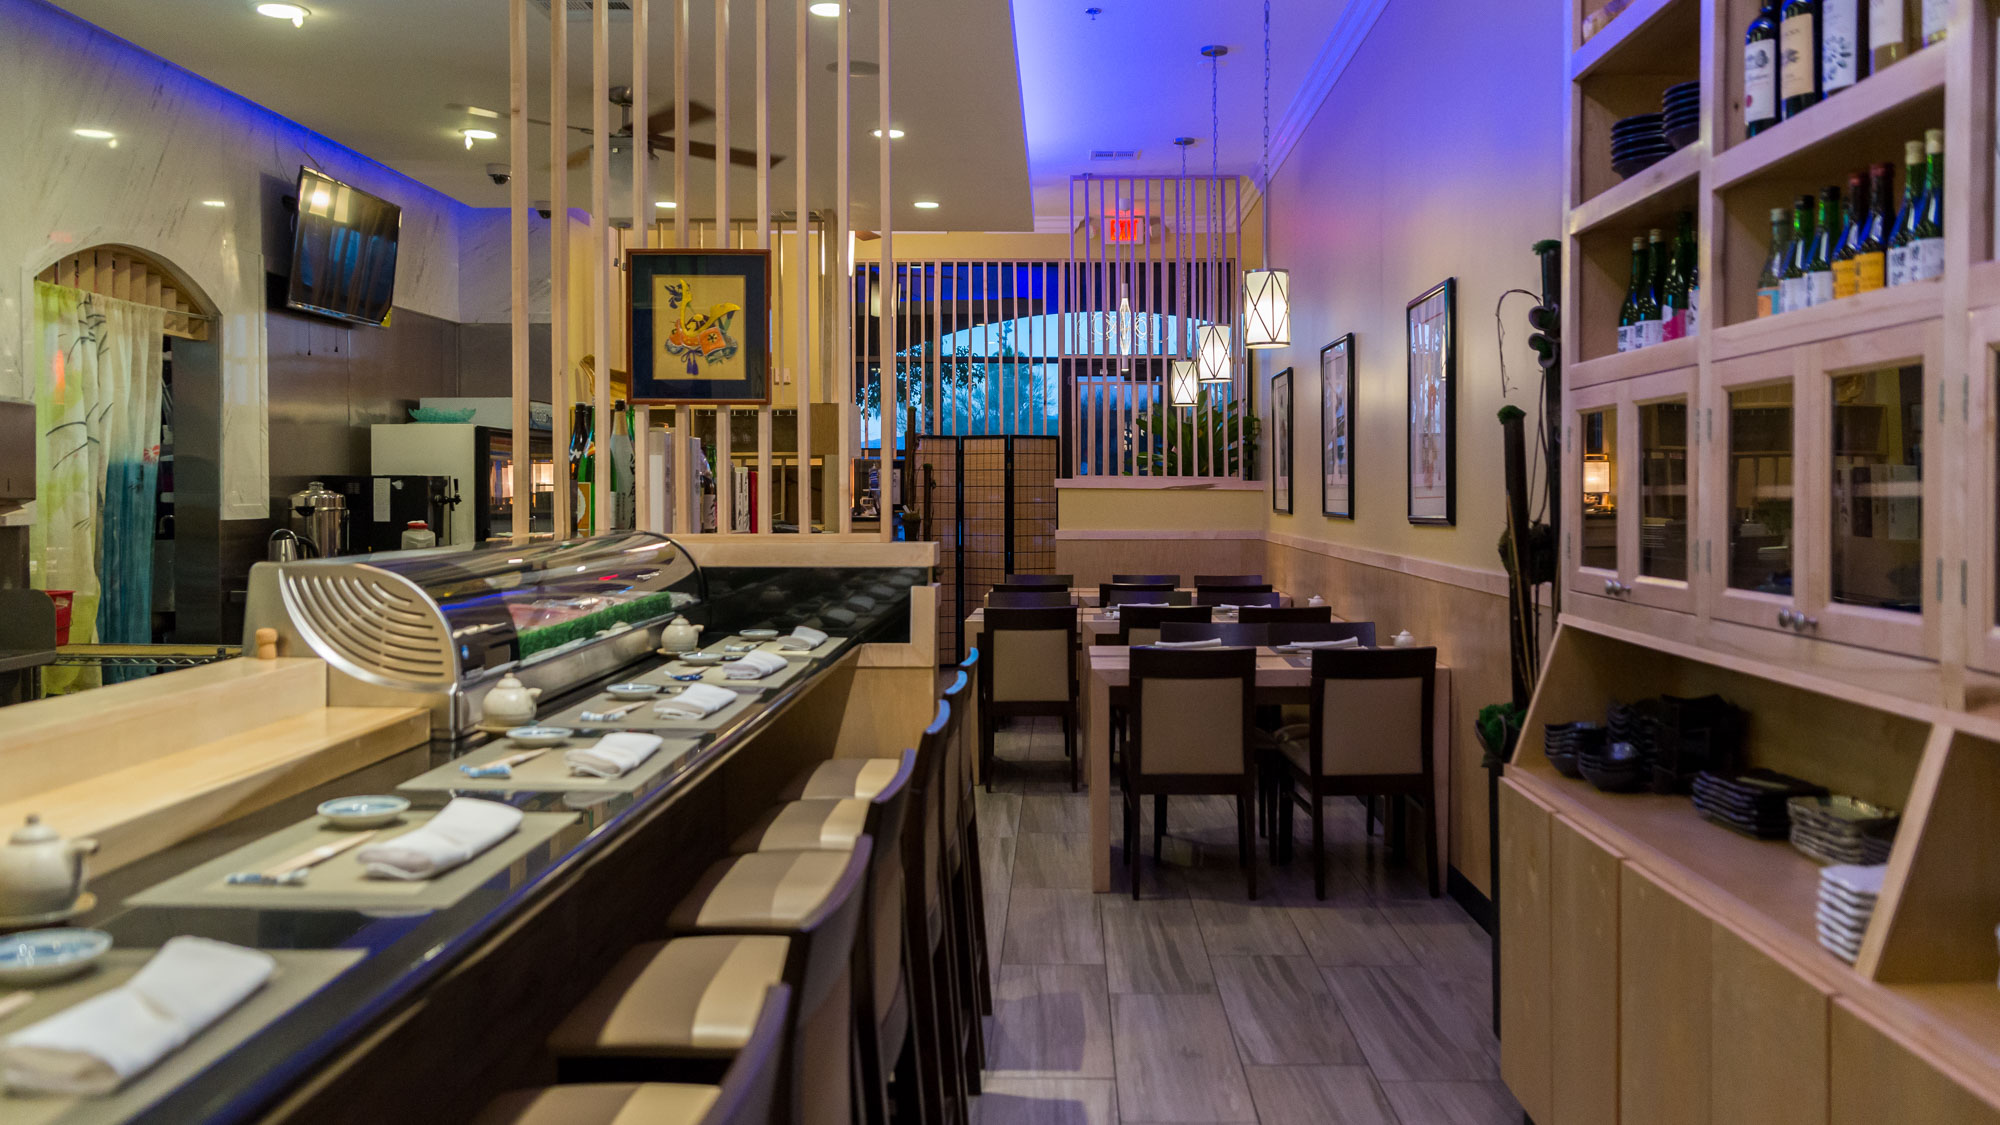 las vegas dining 101 a guide for eating and drinking in sin city kame photo amelinda b lee